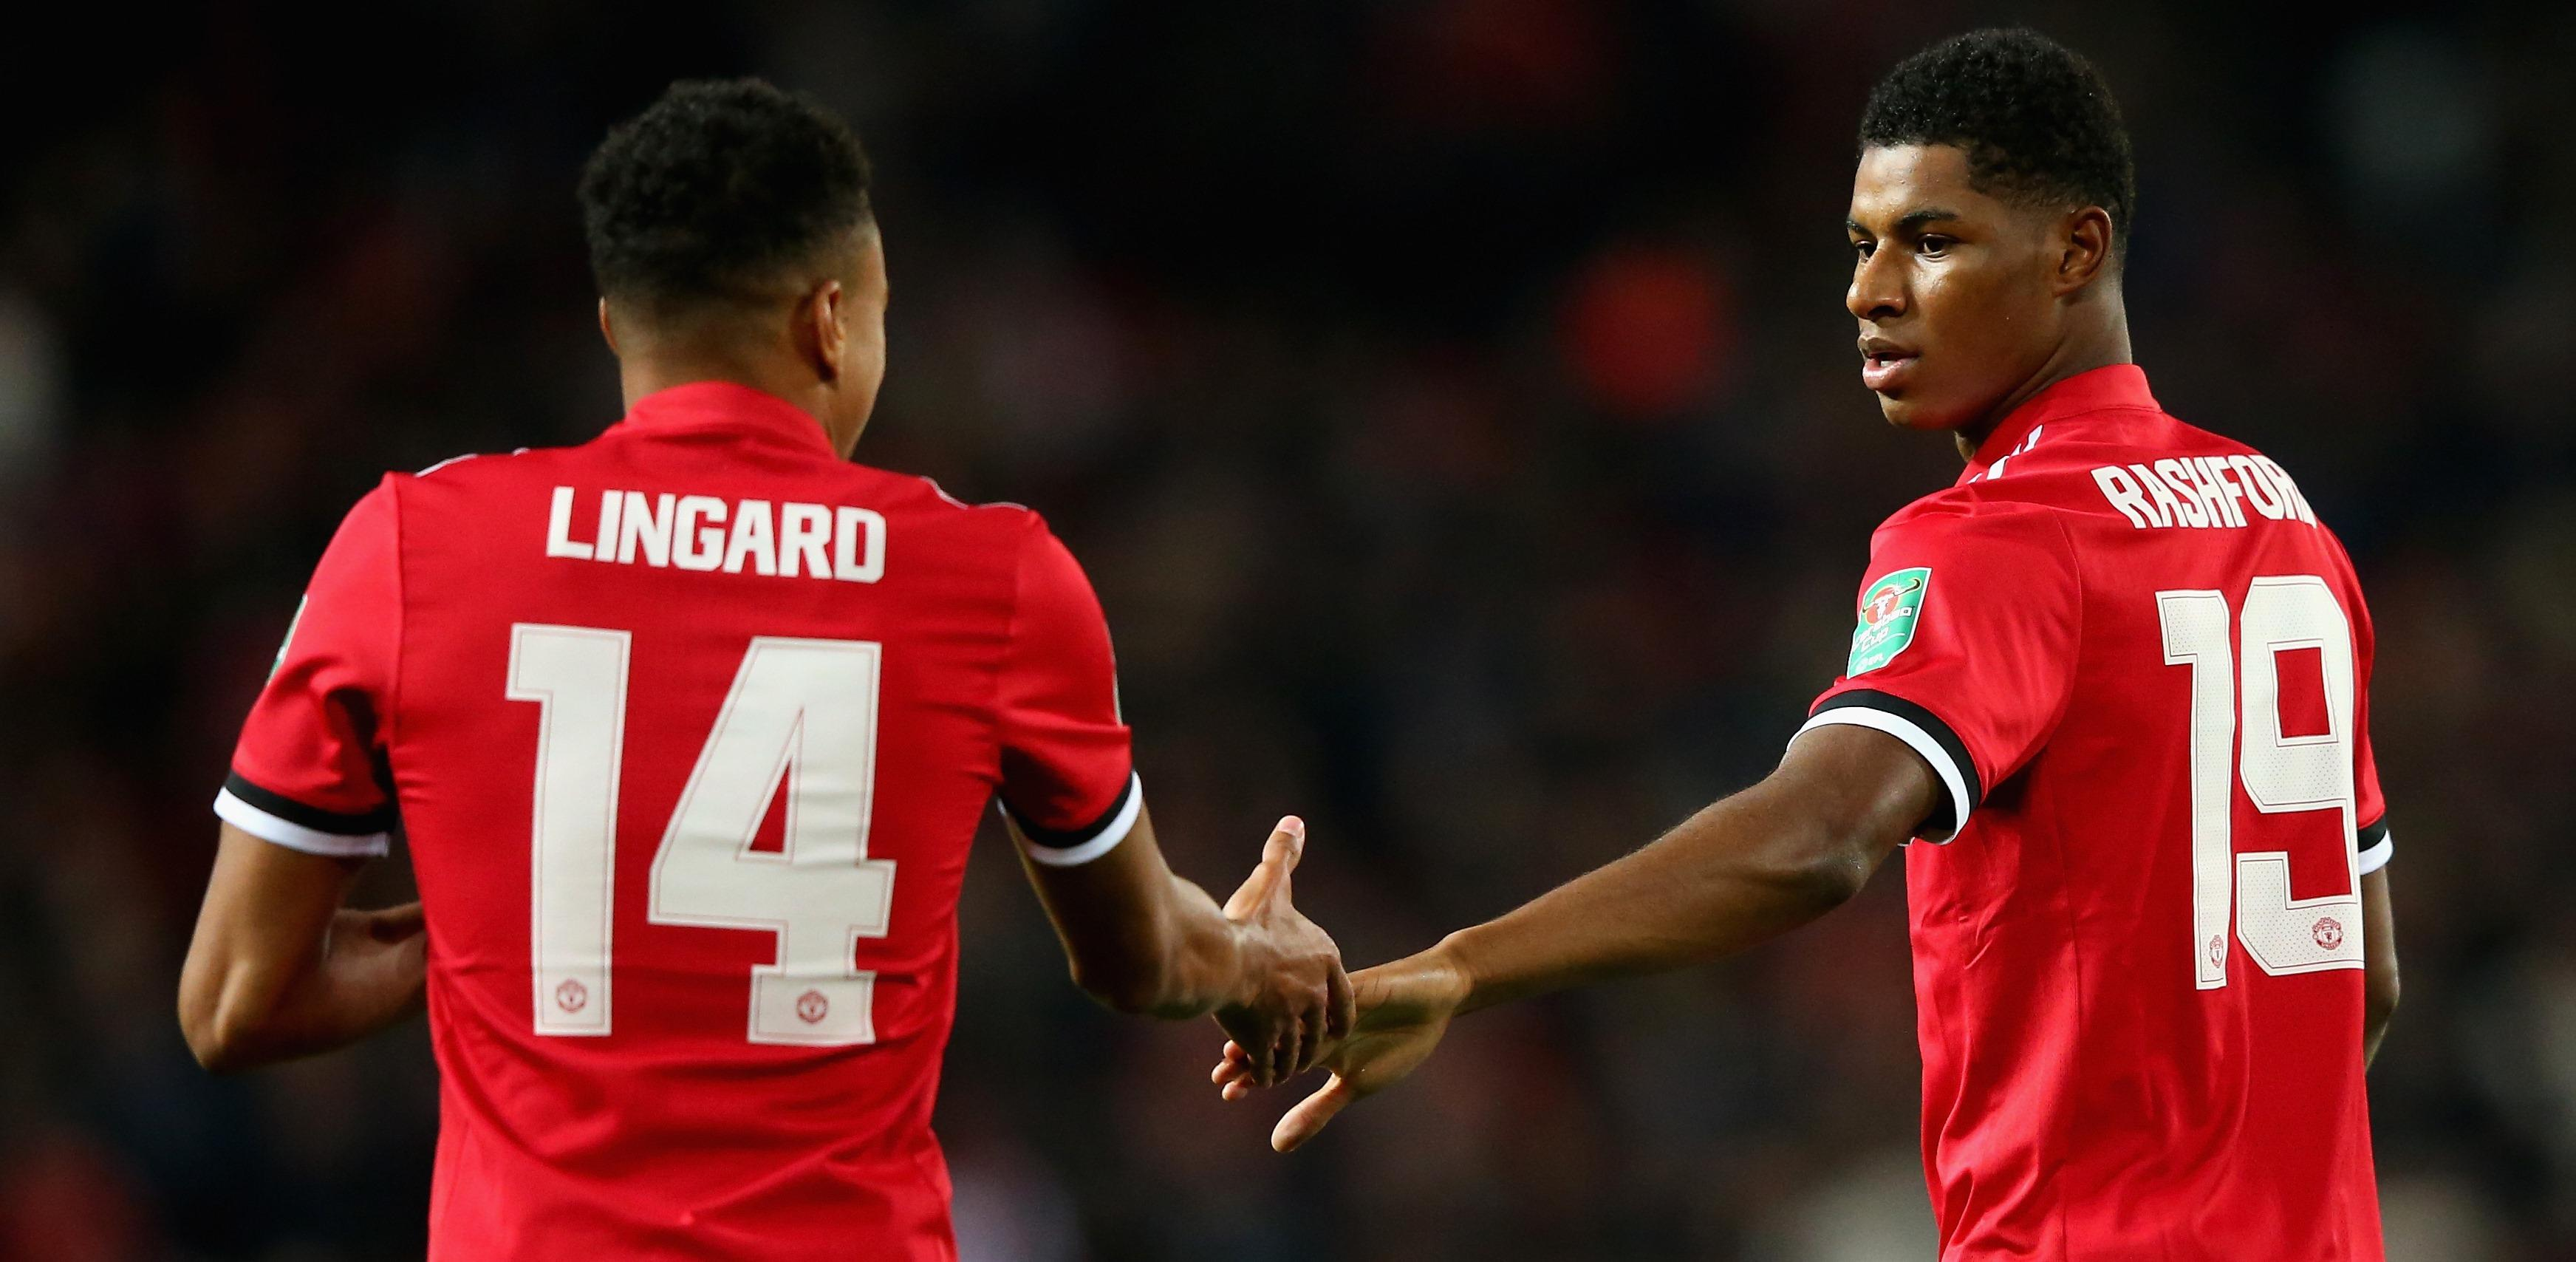 Lingard's big expectations of Rashford